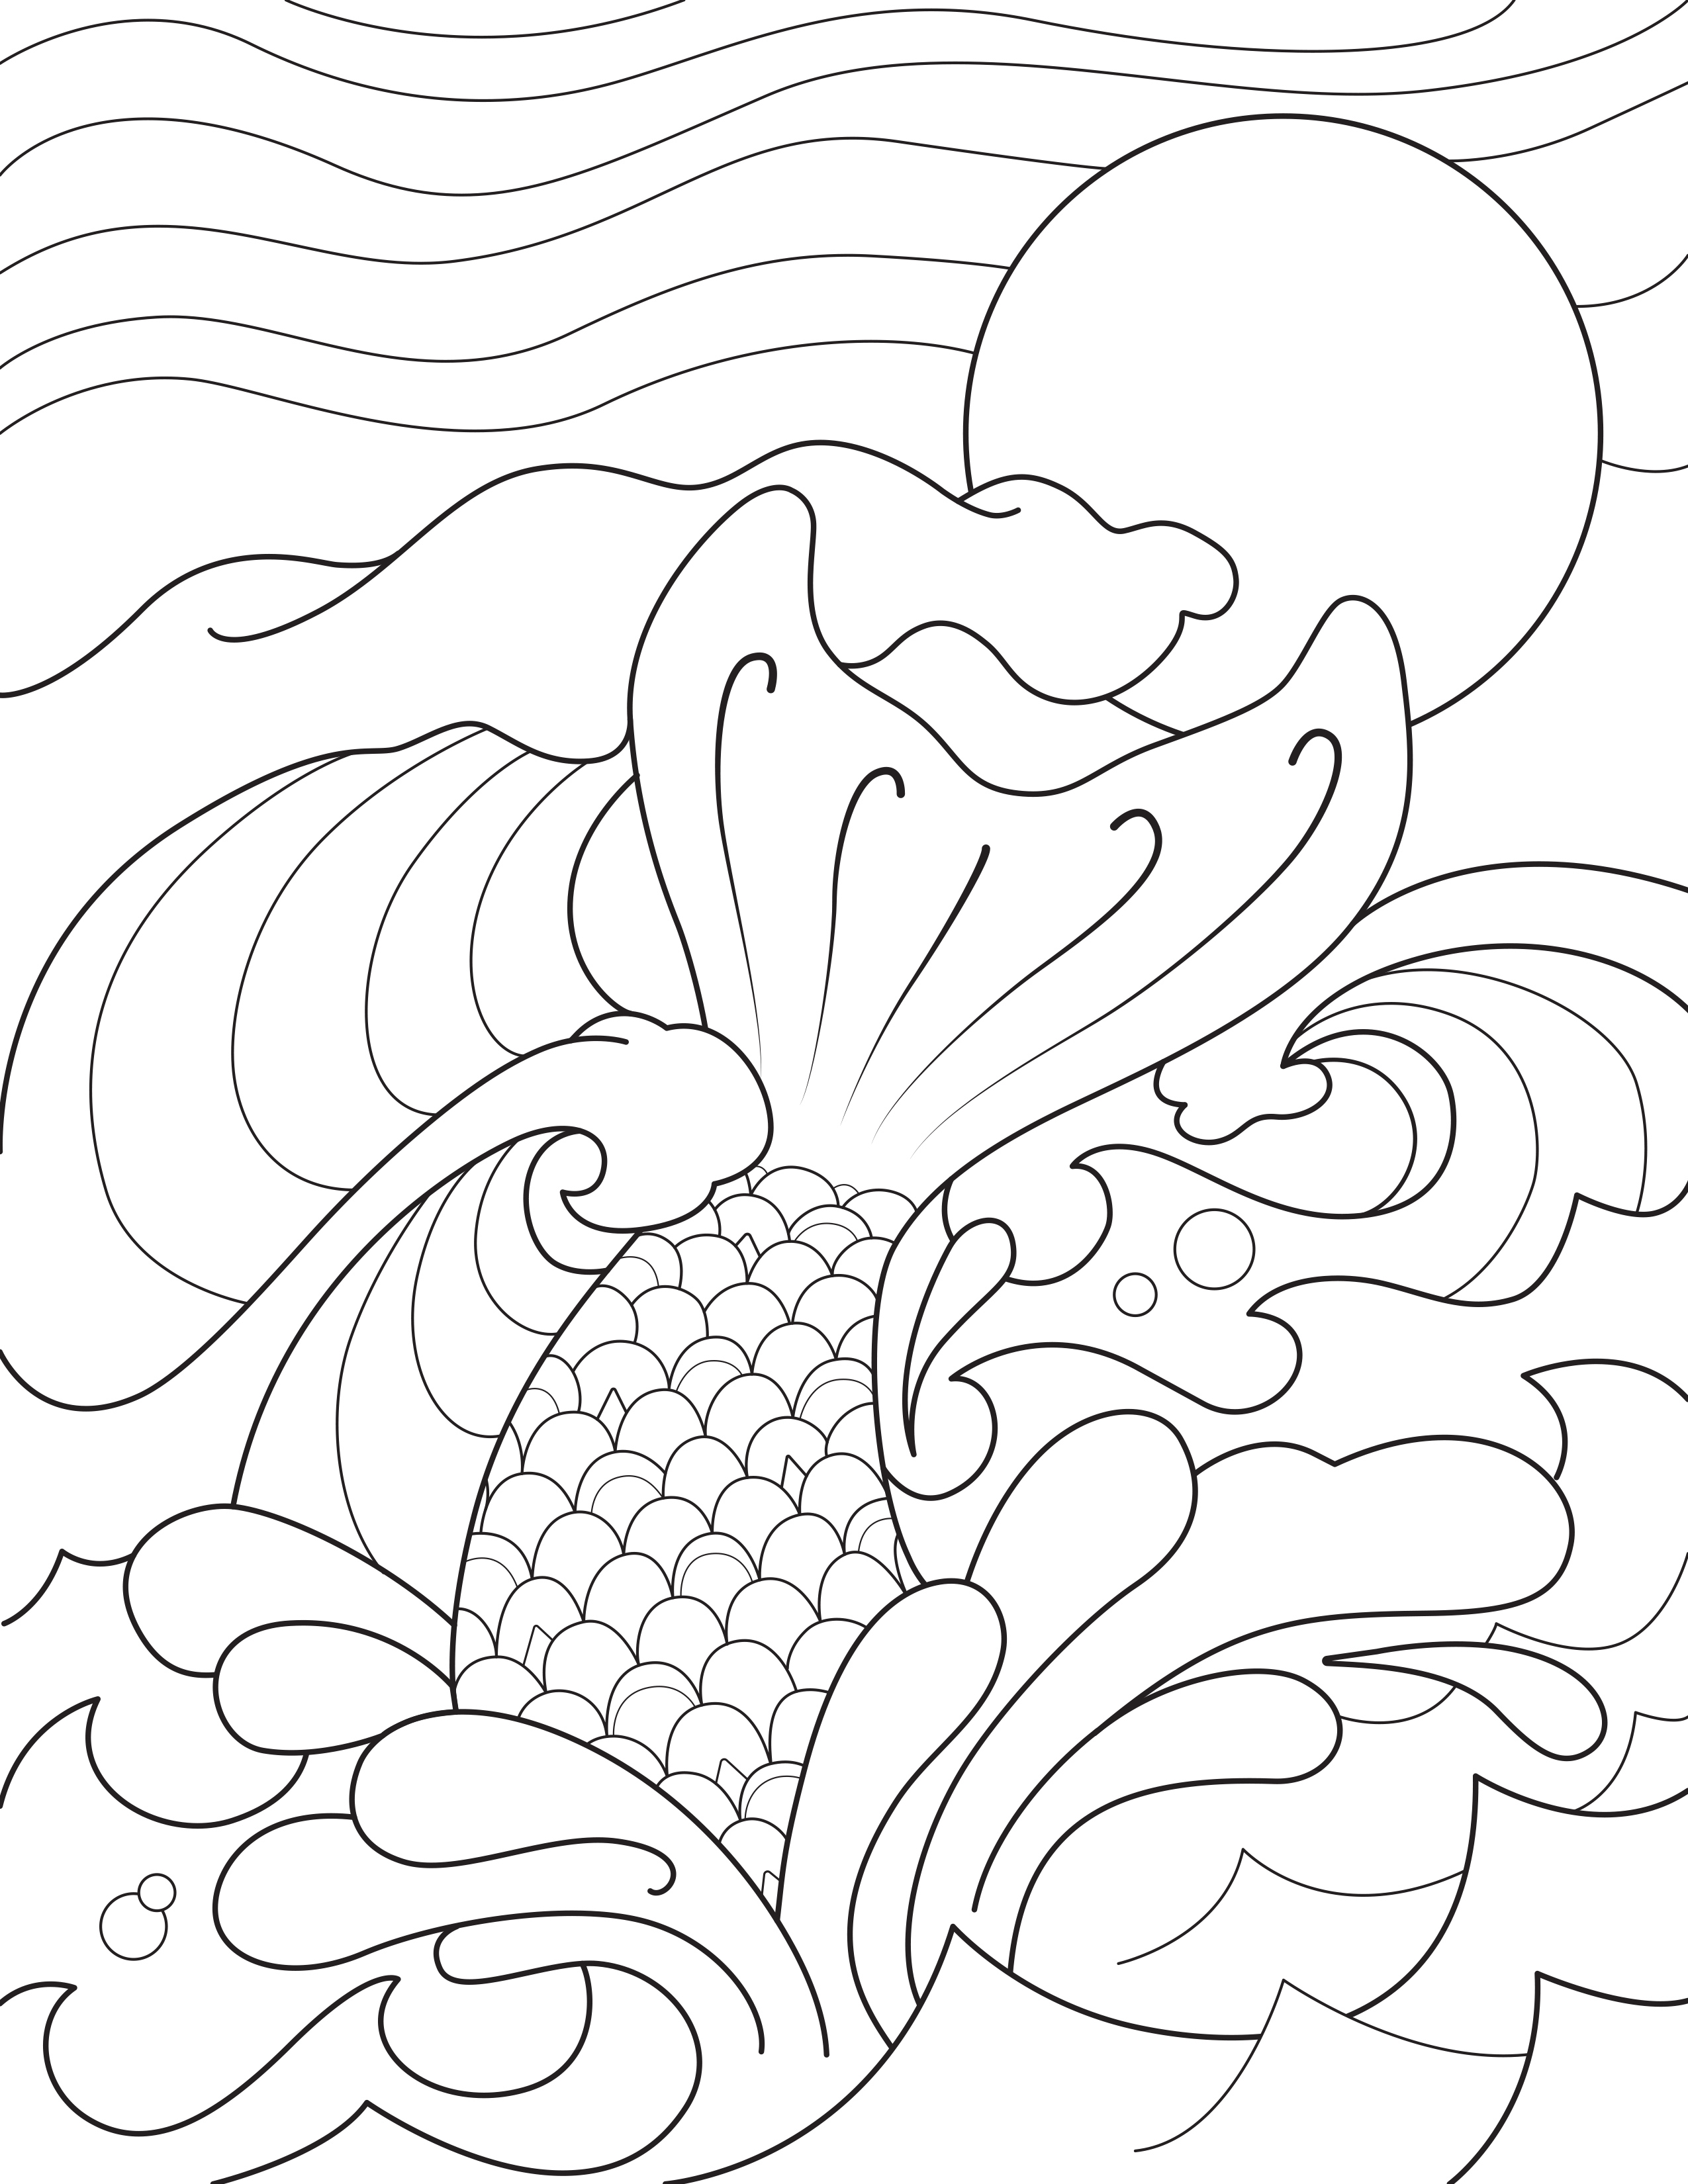 Mermaid Tail Splashing in the Waves Coloring Page